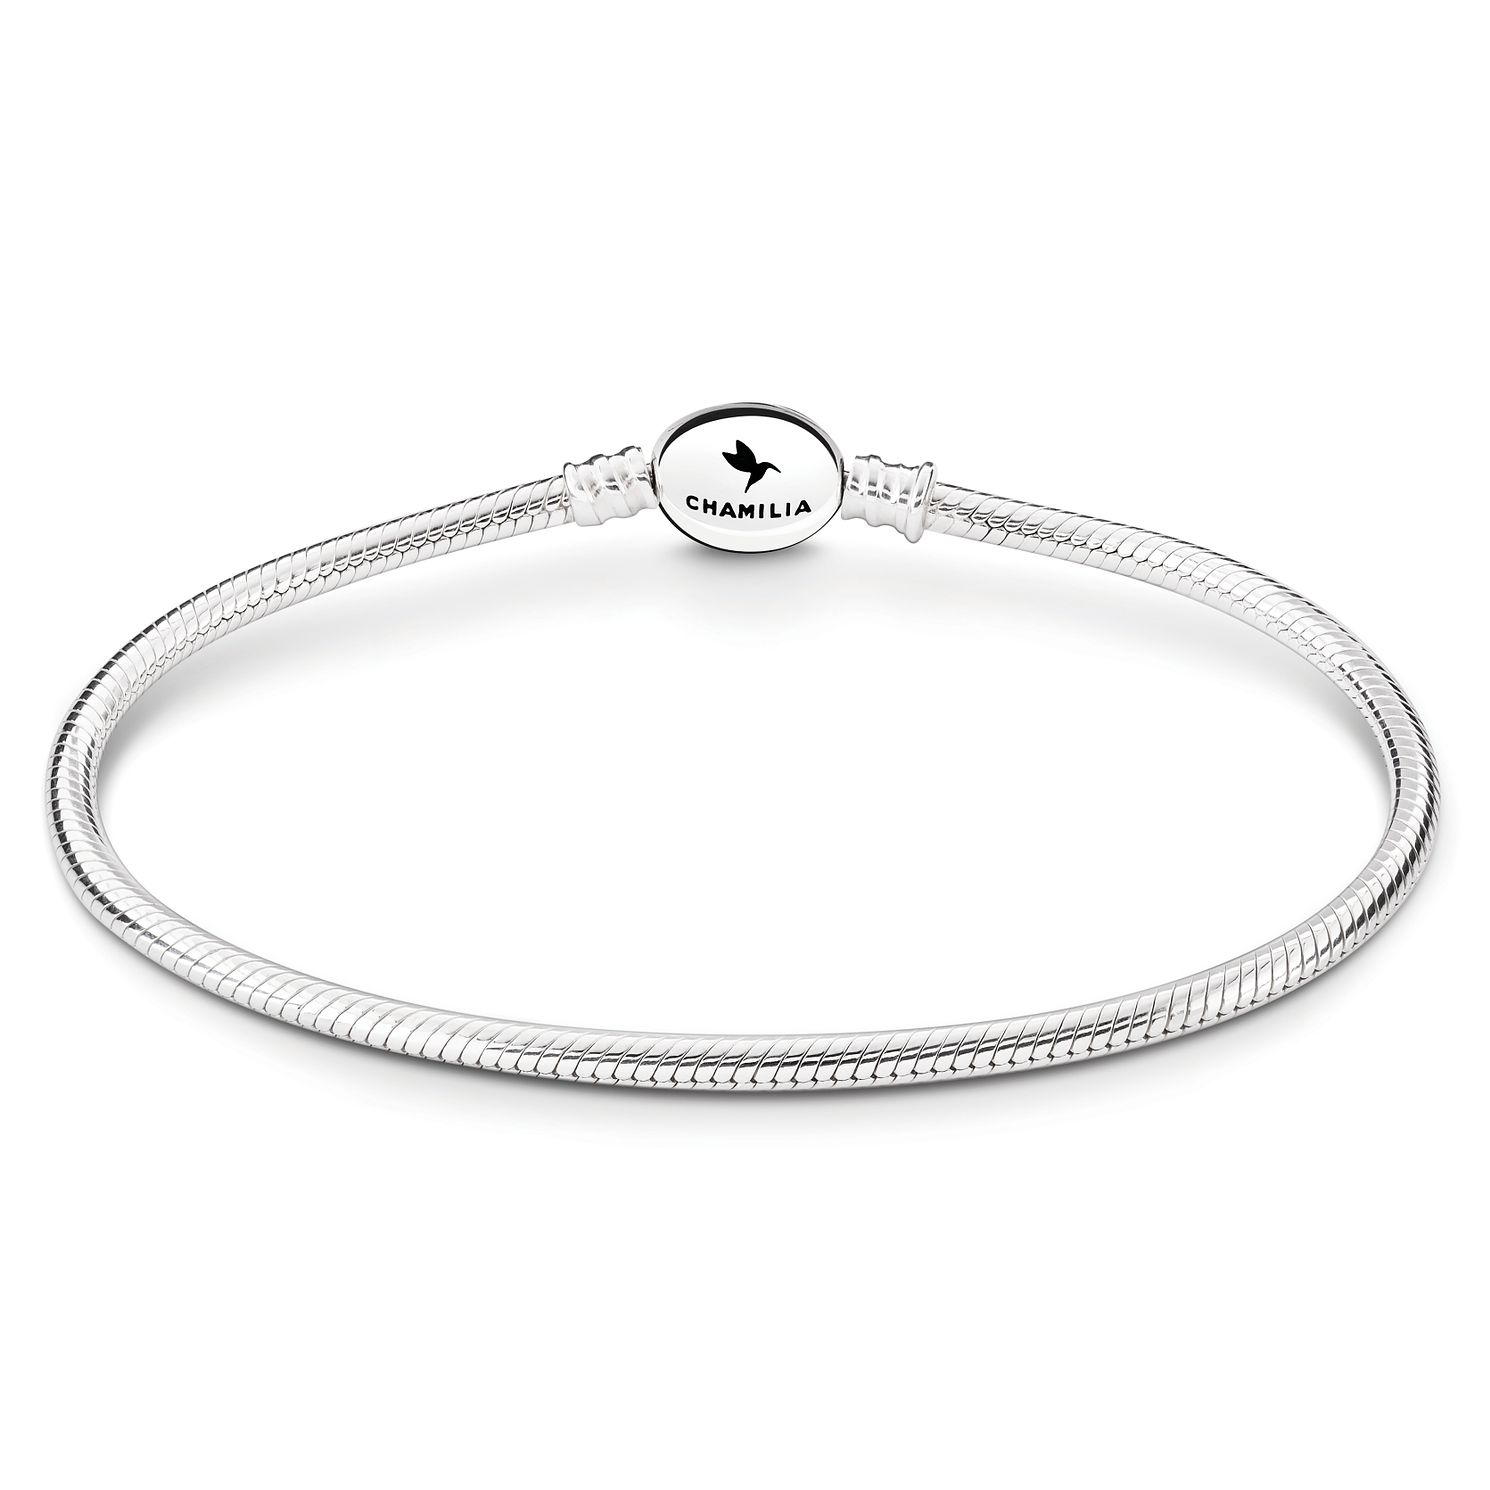 Chamilia Oval Snap Bracelet 8.3 inches - Product number 8180903